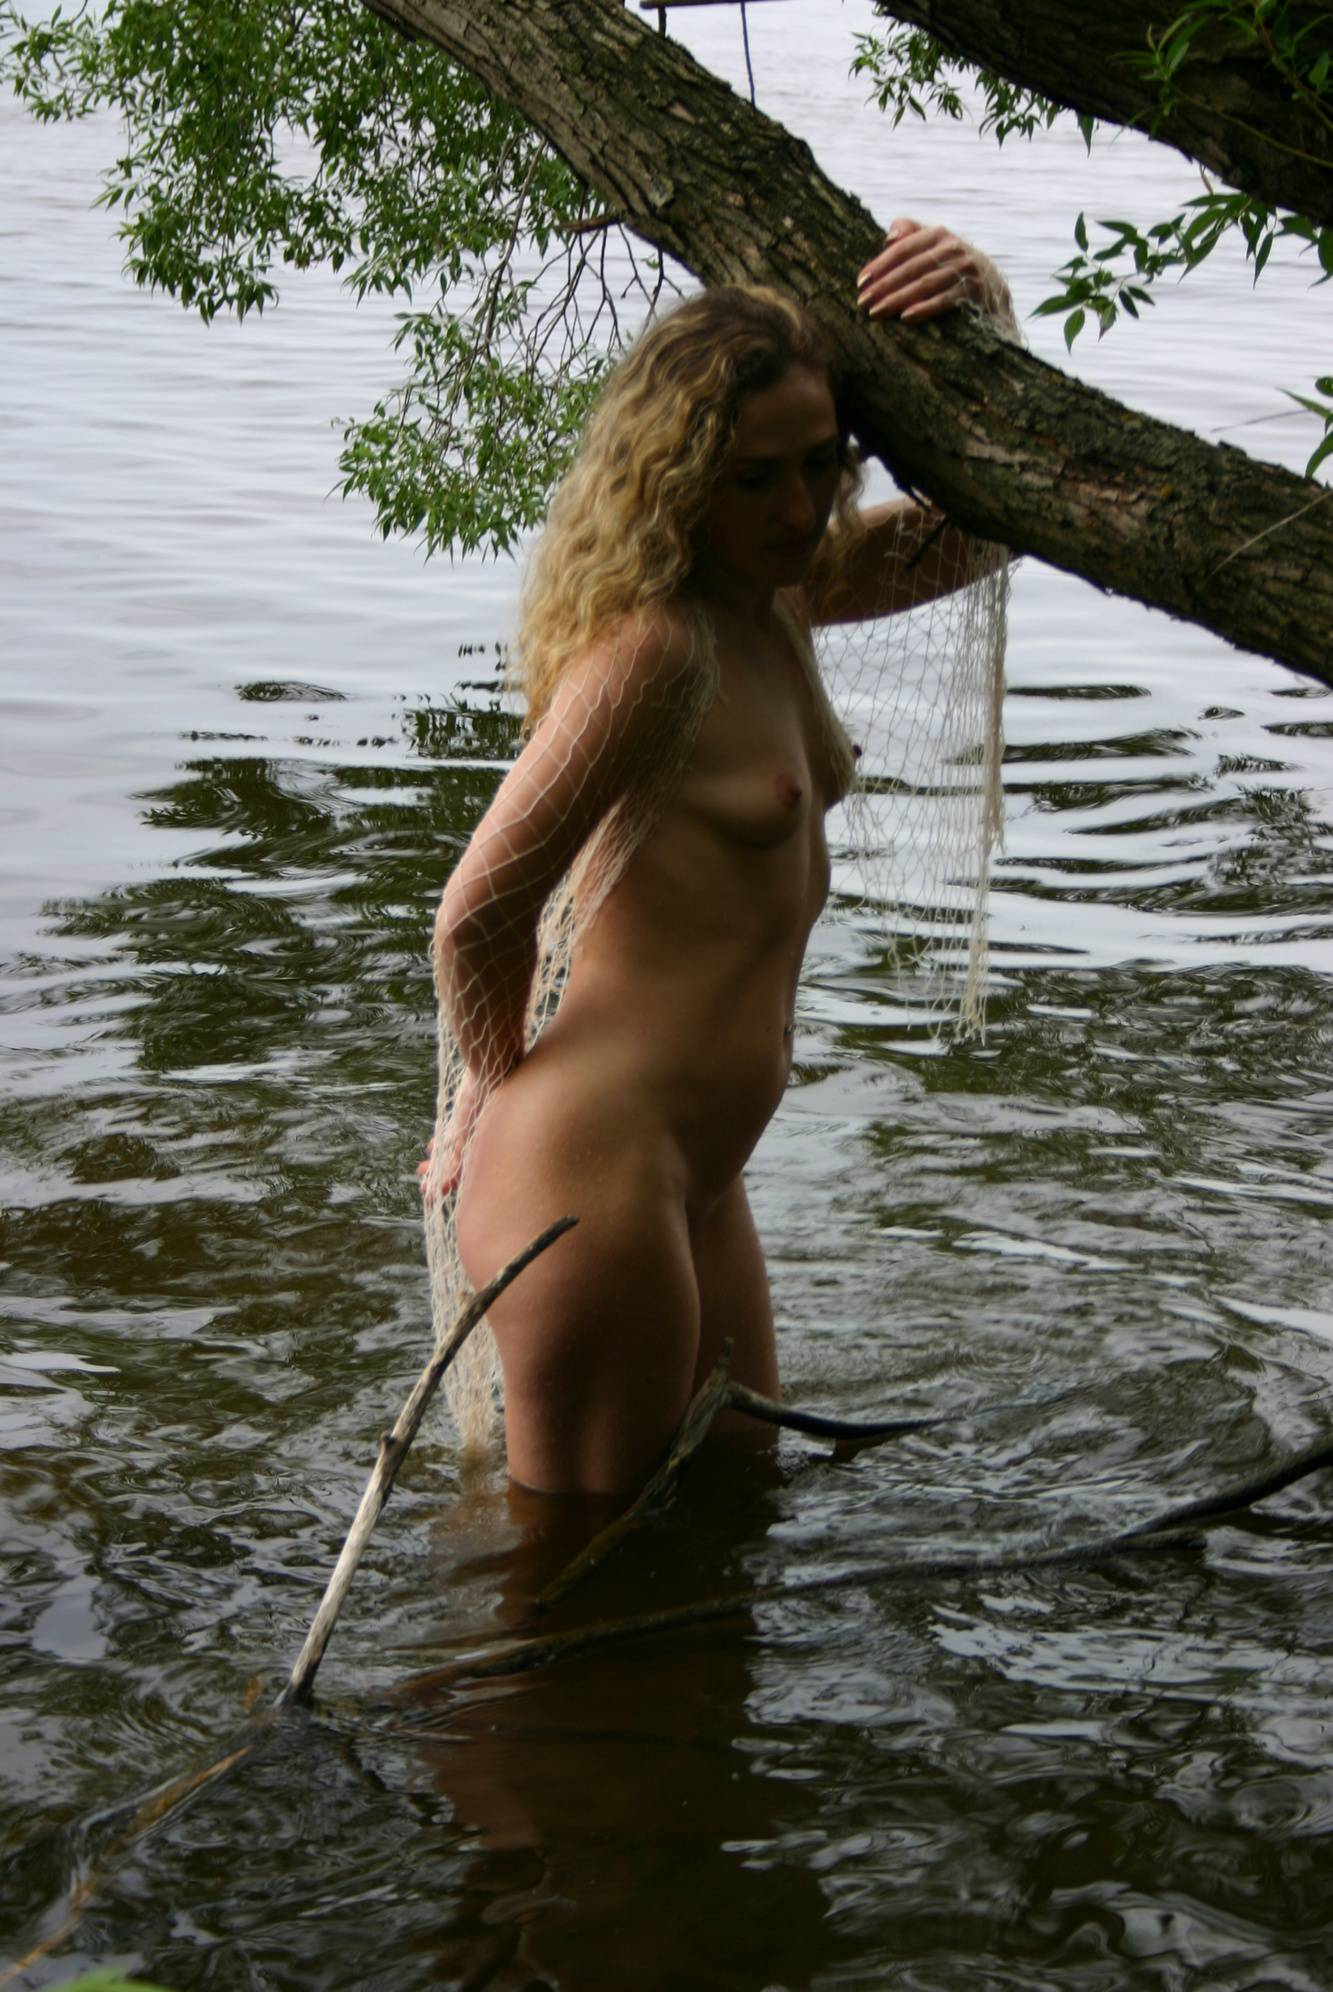 Nudist Photos Dare to Be Bare Nets - 1